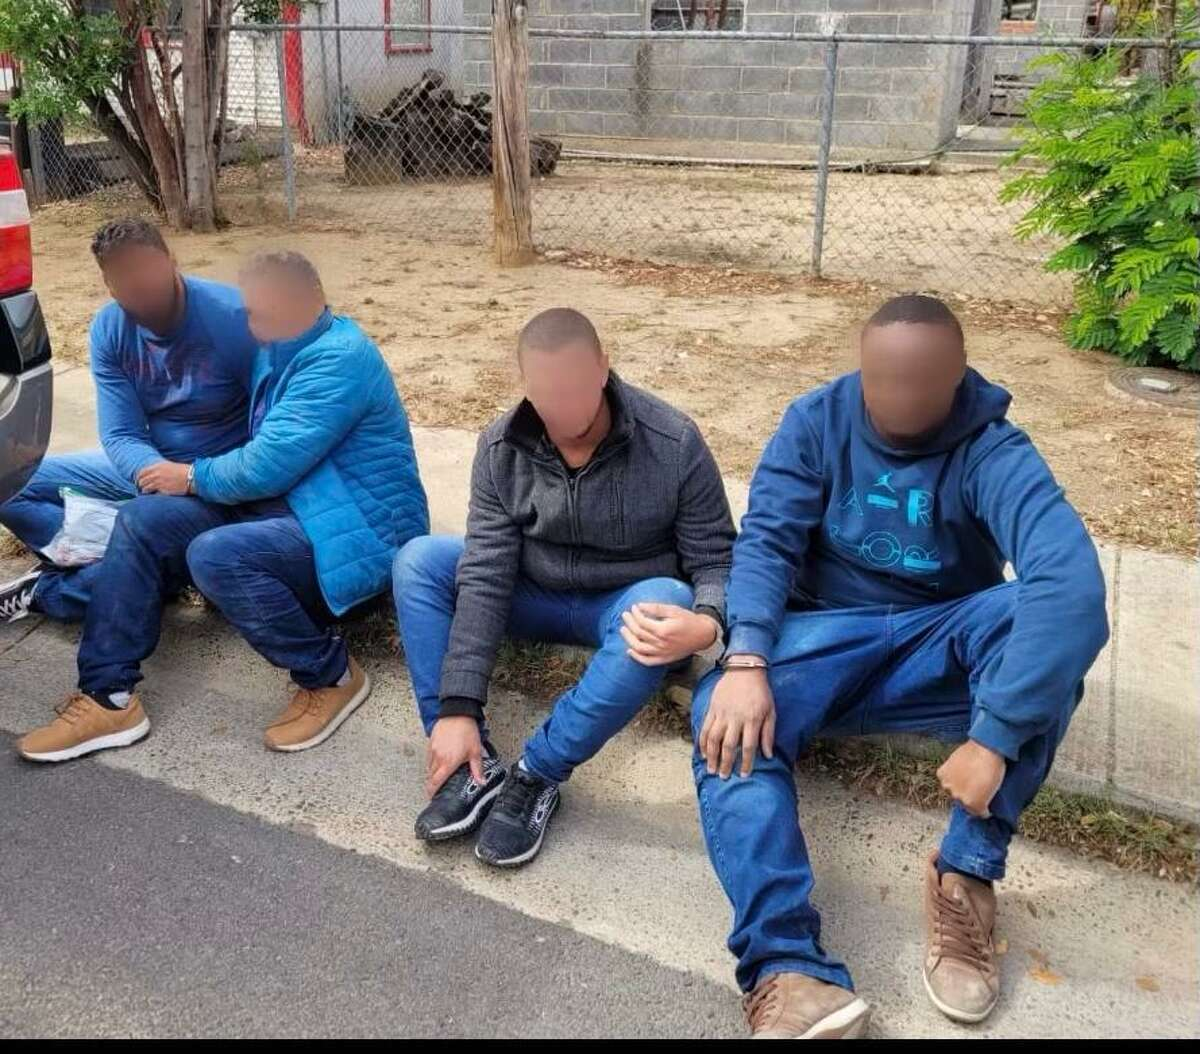 A man was allegedly transporting these four individuals. They were determined to be immigrants from Brazil who had crossed the border illegally.